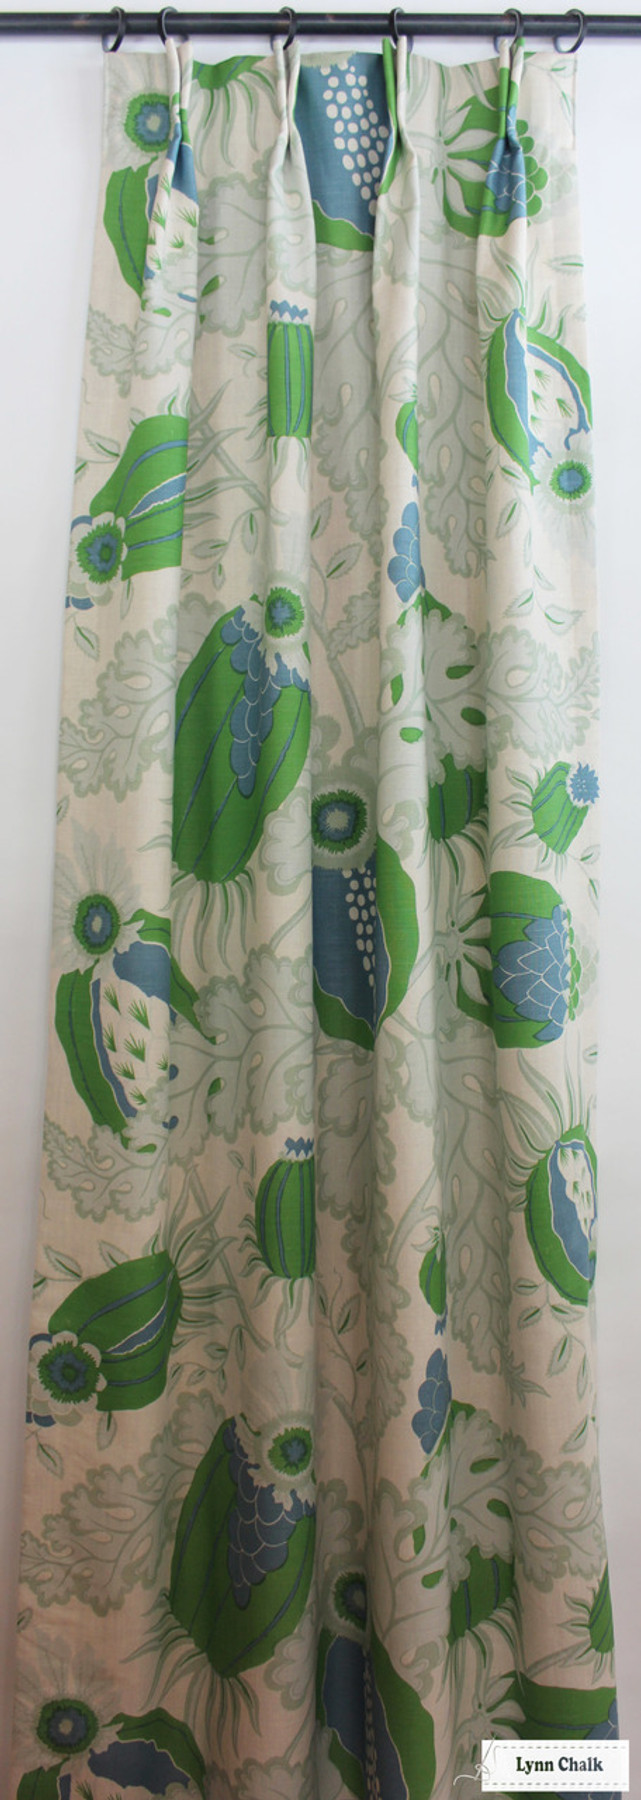 Christopher Farr Carnival Custom Drapes (shown in Green-comes in several colors)